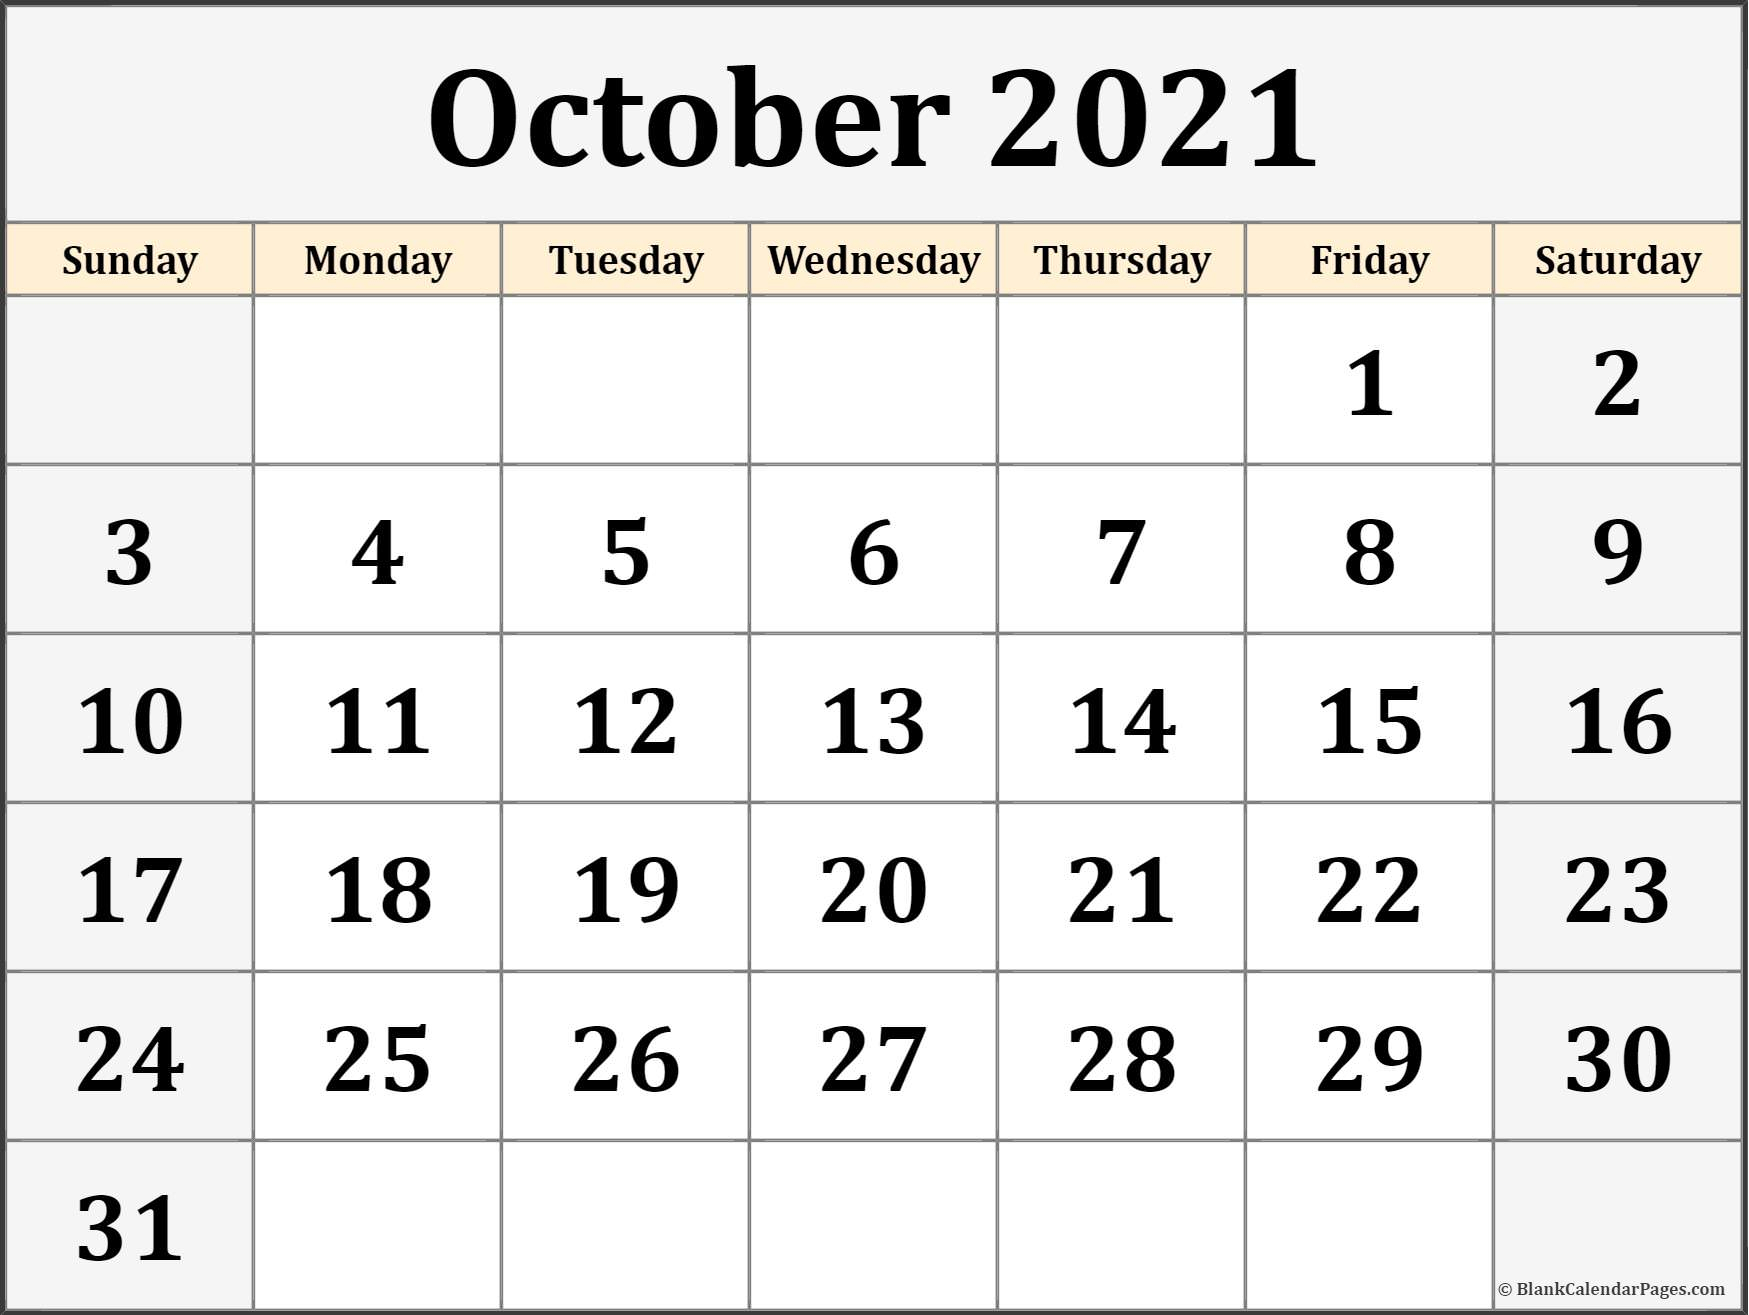 October 2021 Calendar | Free Printable Monthly Calendars